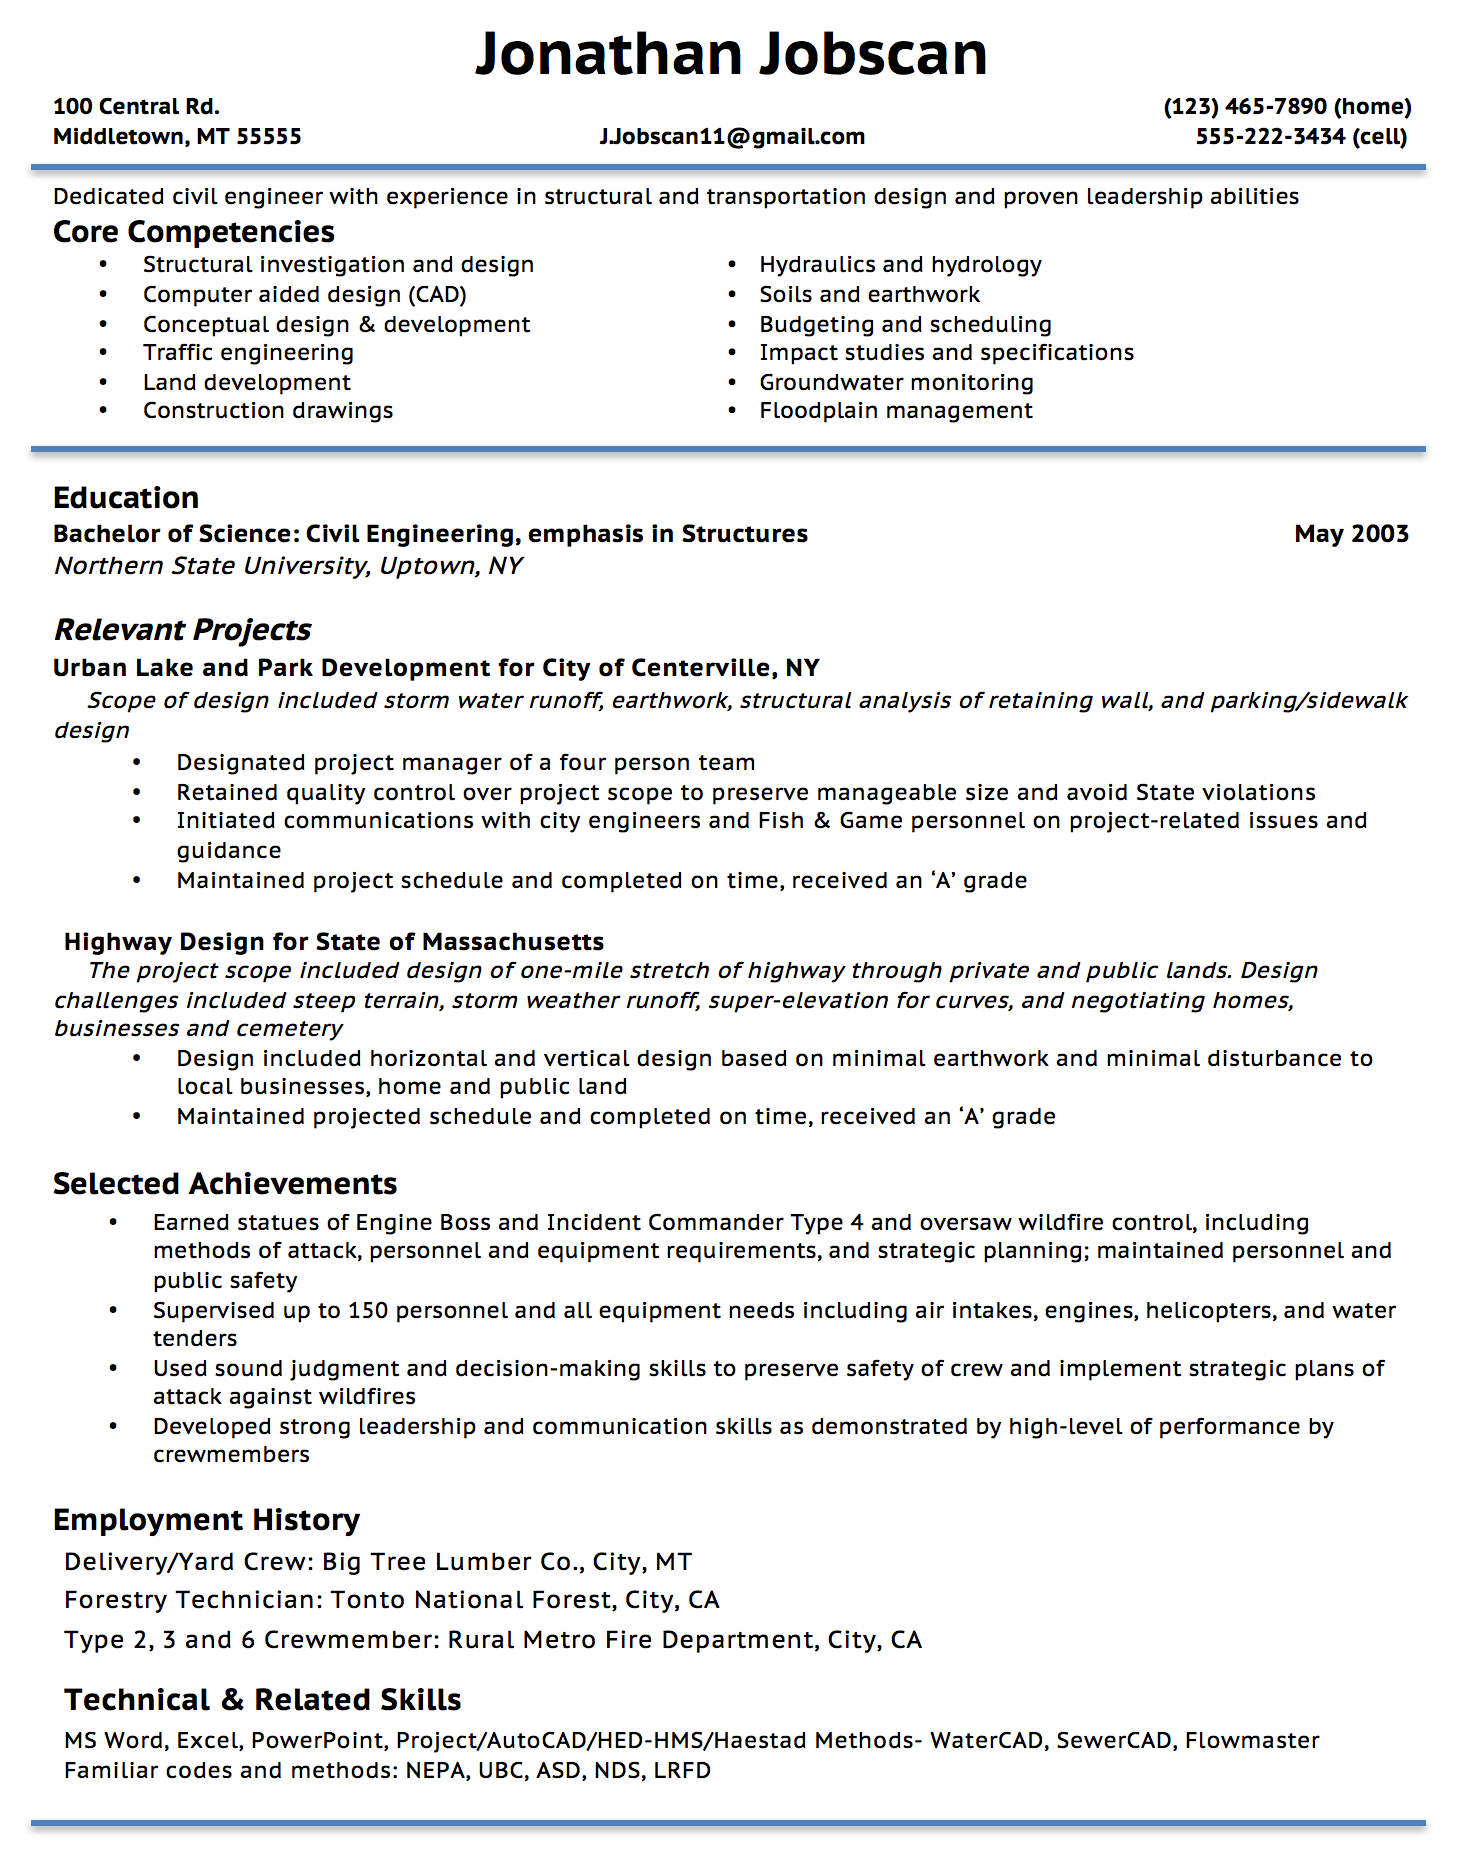 Resume Writing Guide - Jobscan